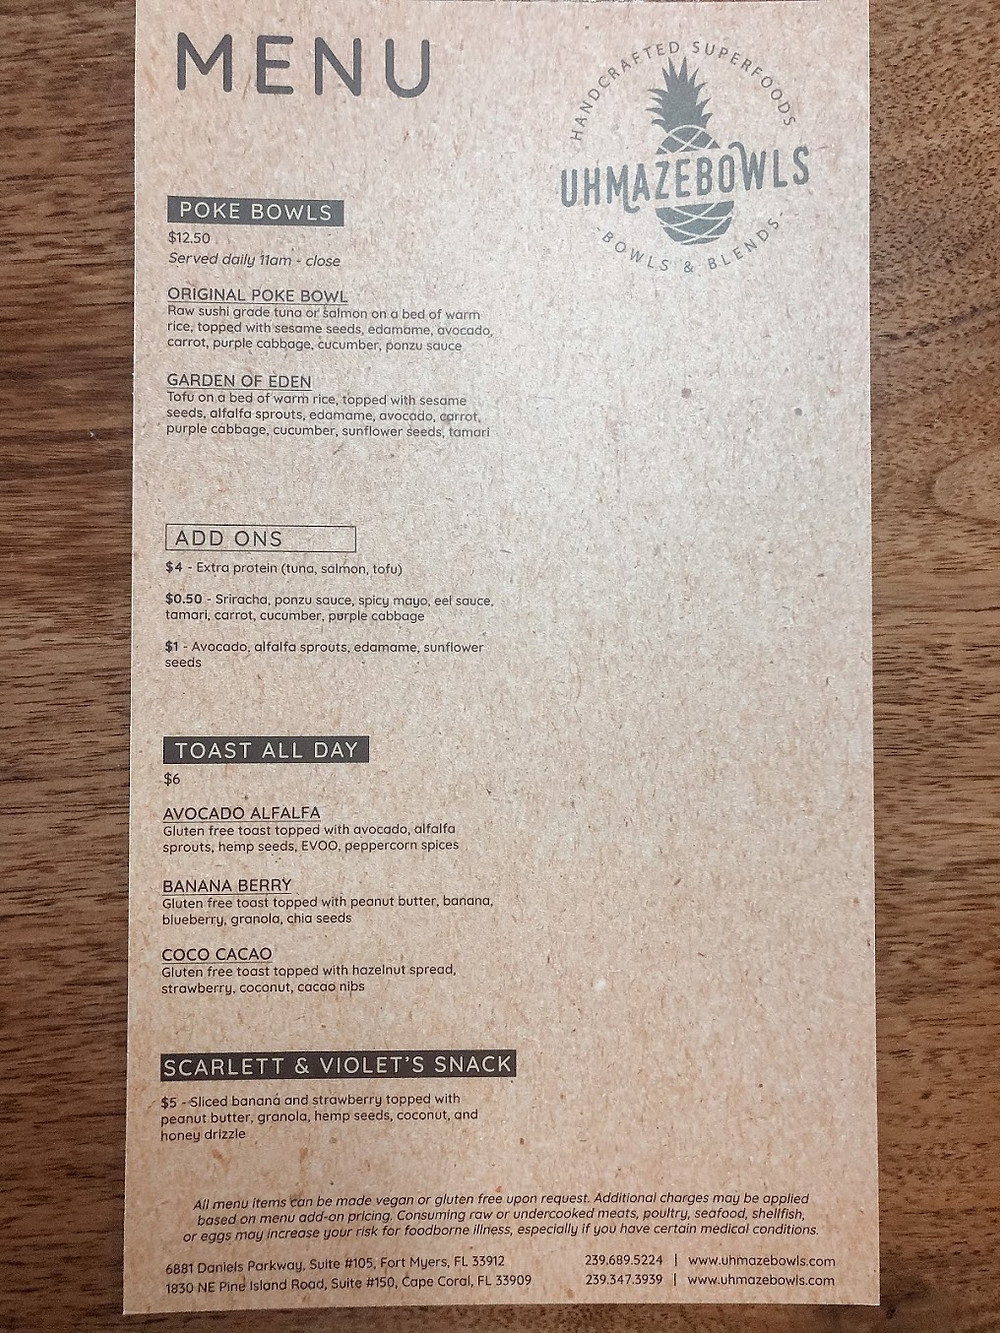 UHMAZEBOWLS menu back with poke bowls, avocado toast, and snacks in Fort Myers & Cape Coral